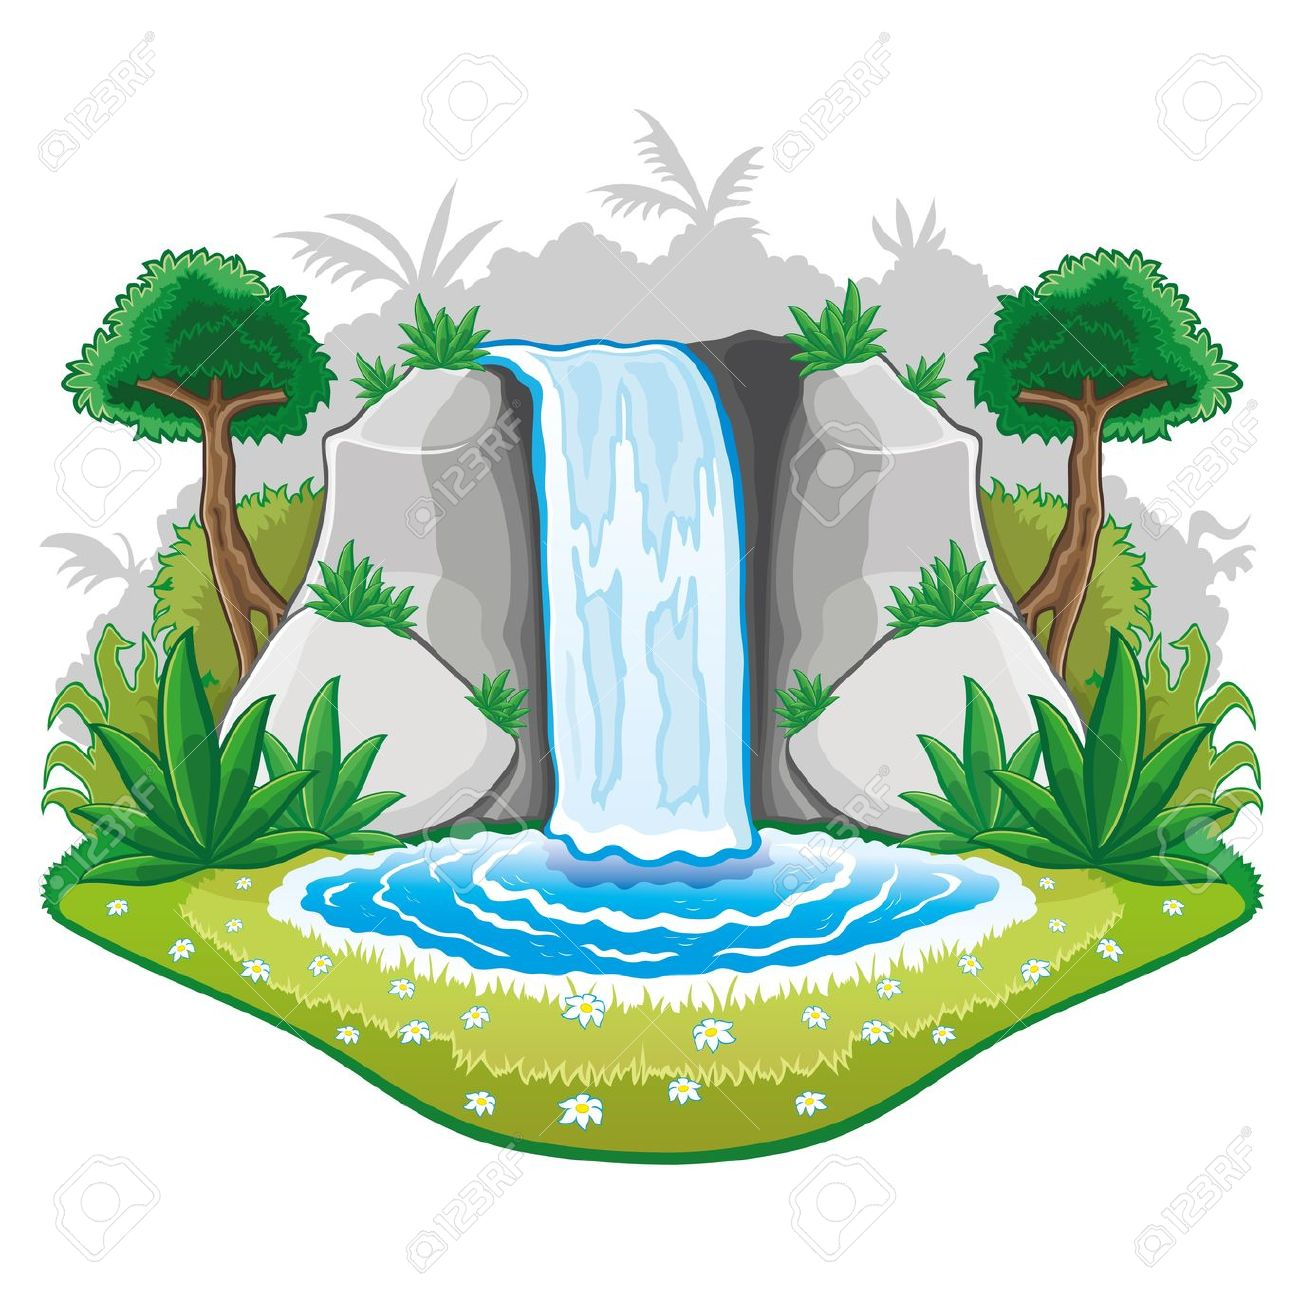 Animated Waterfall Clipart.